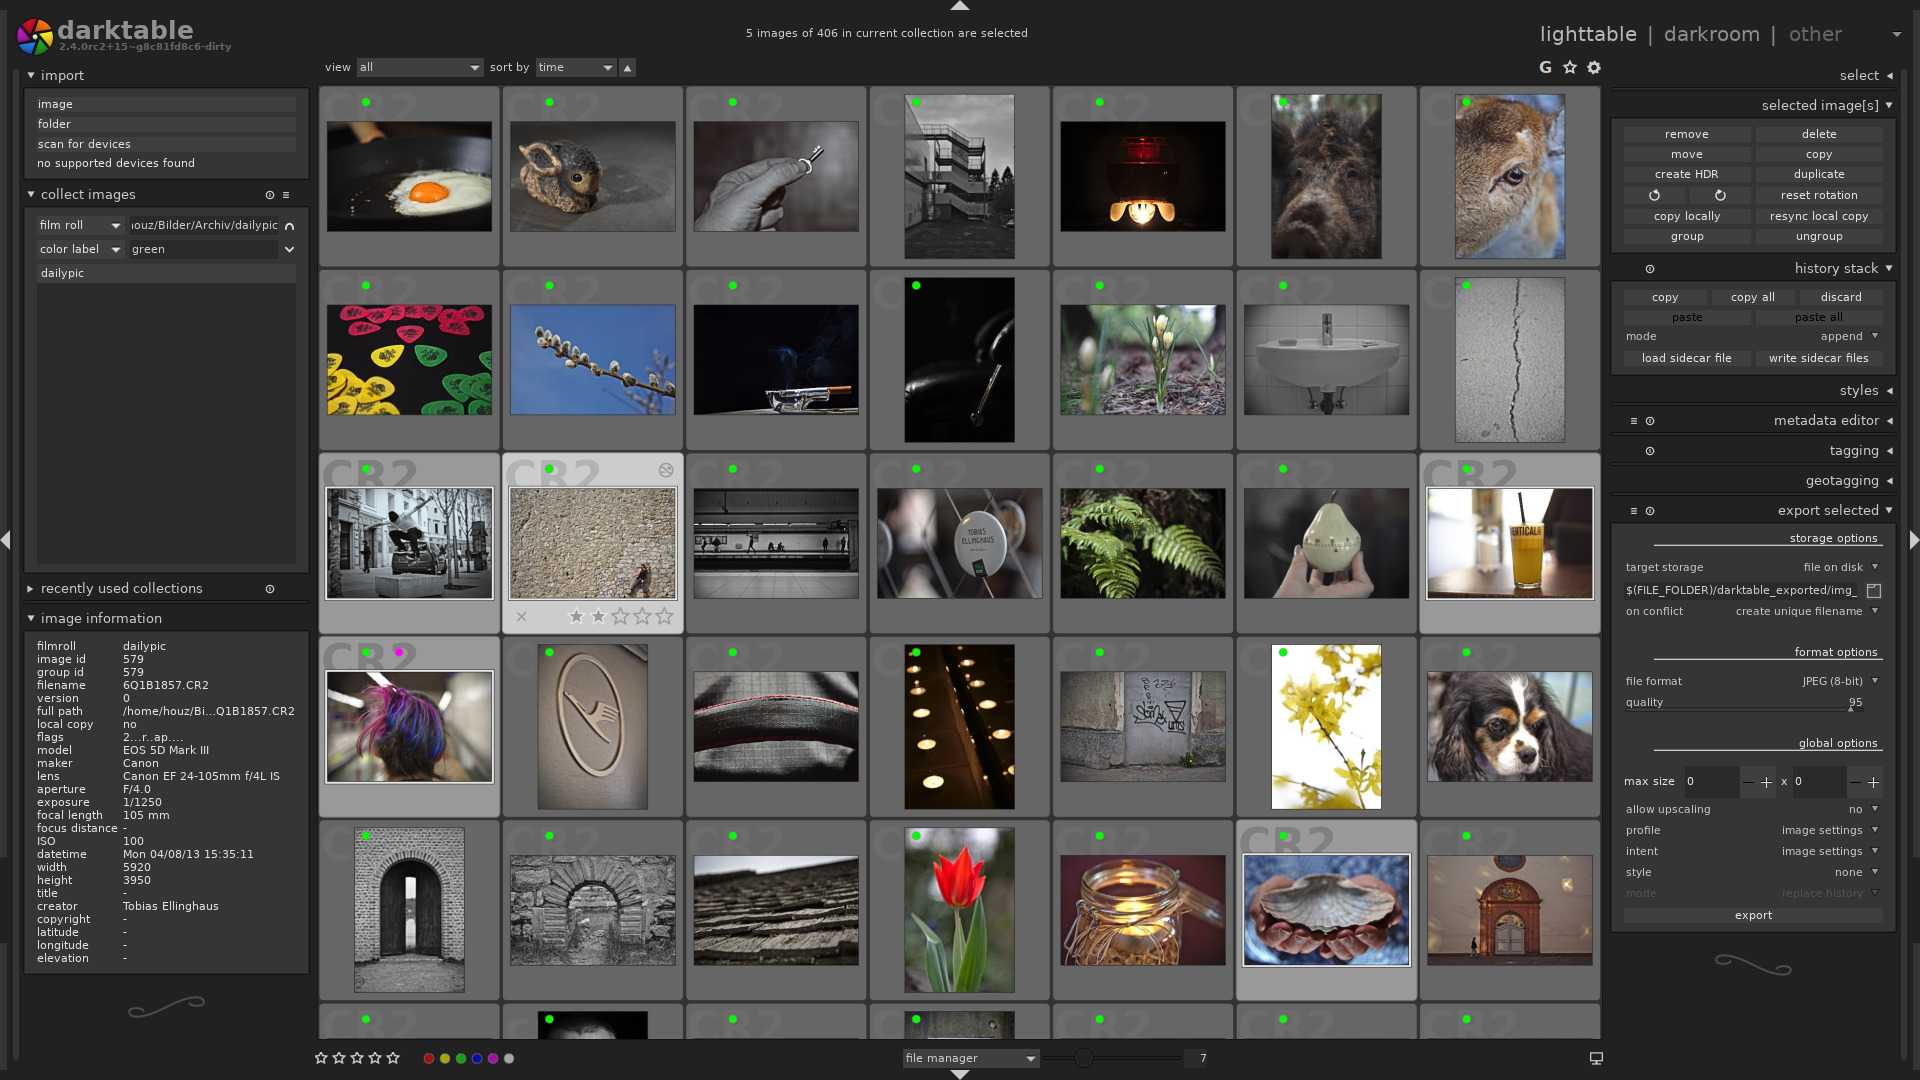 Free Lightroom alternative Darktable is now available on